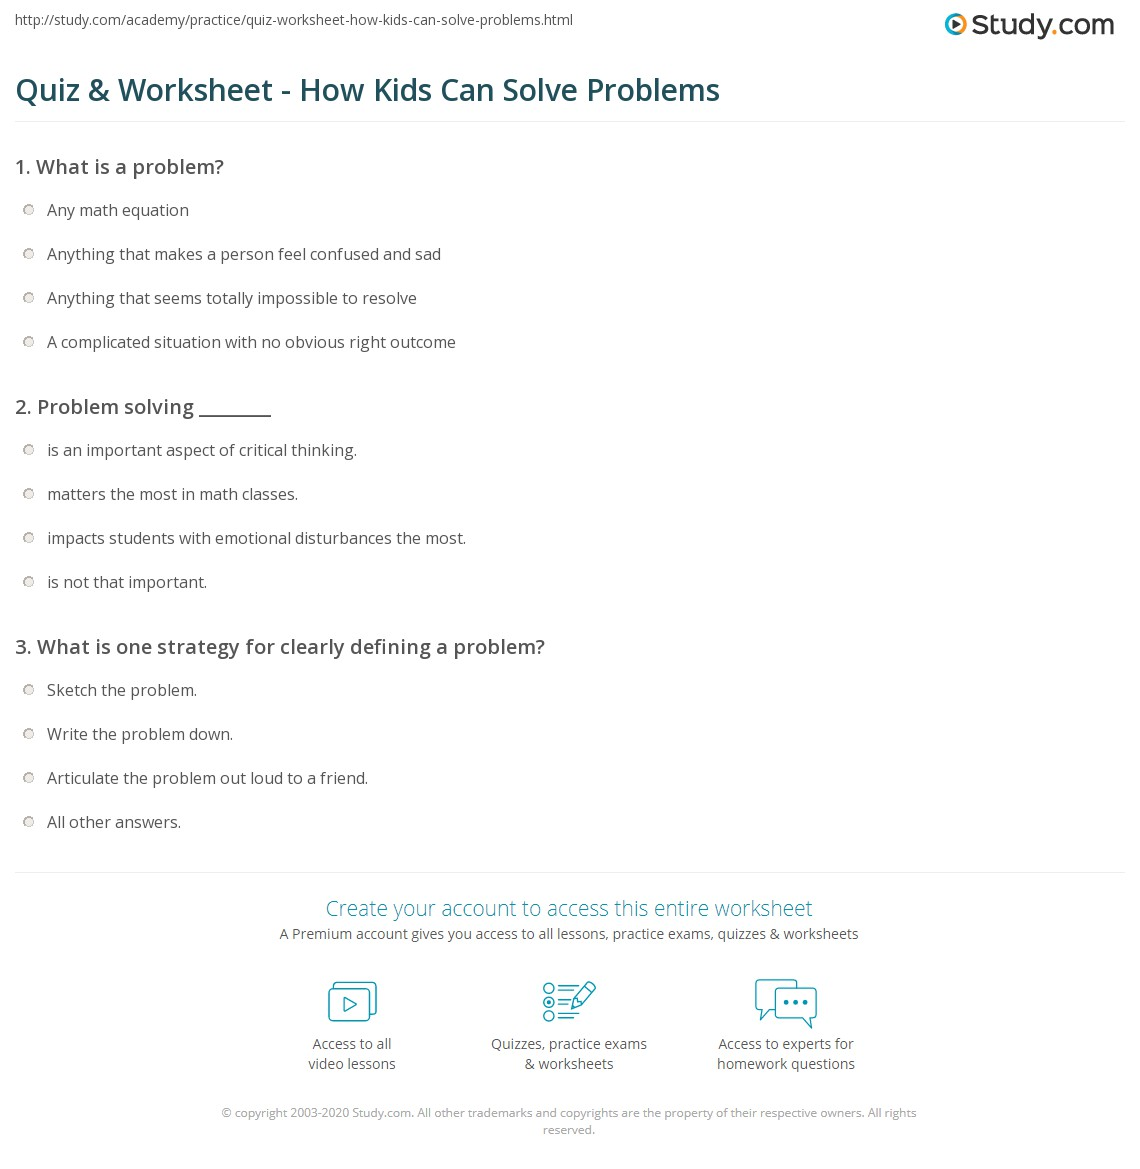 Printables Problem Solving Skills Worksheets printables problem solving skills worksheets safarmediapps quiz worksheet how kids can solve problems study com print problem